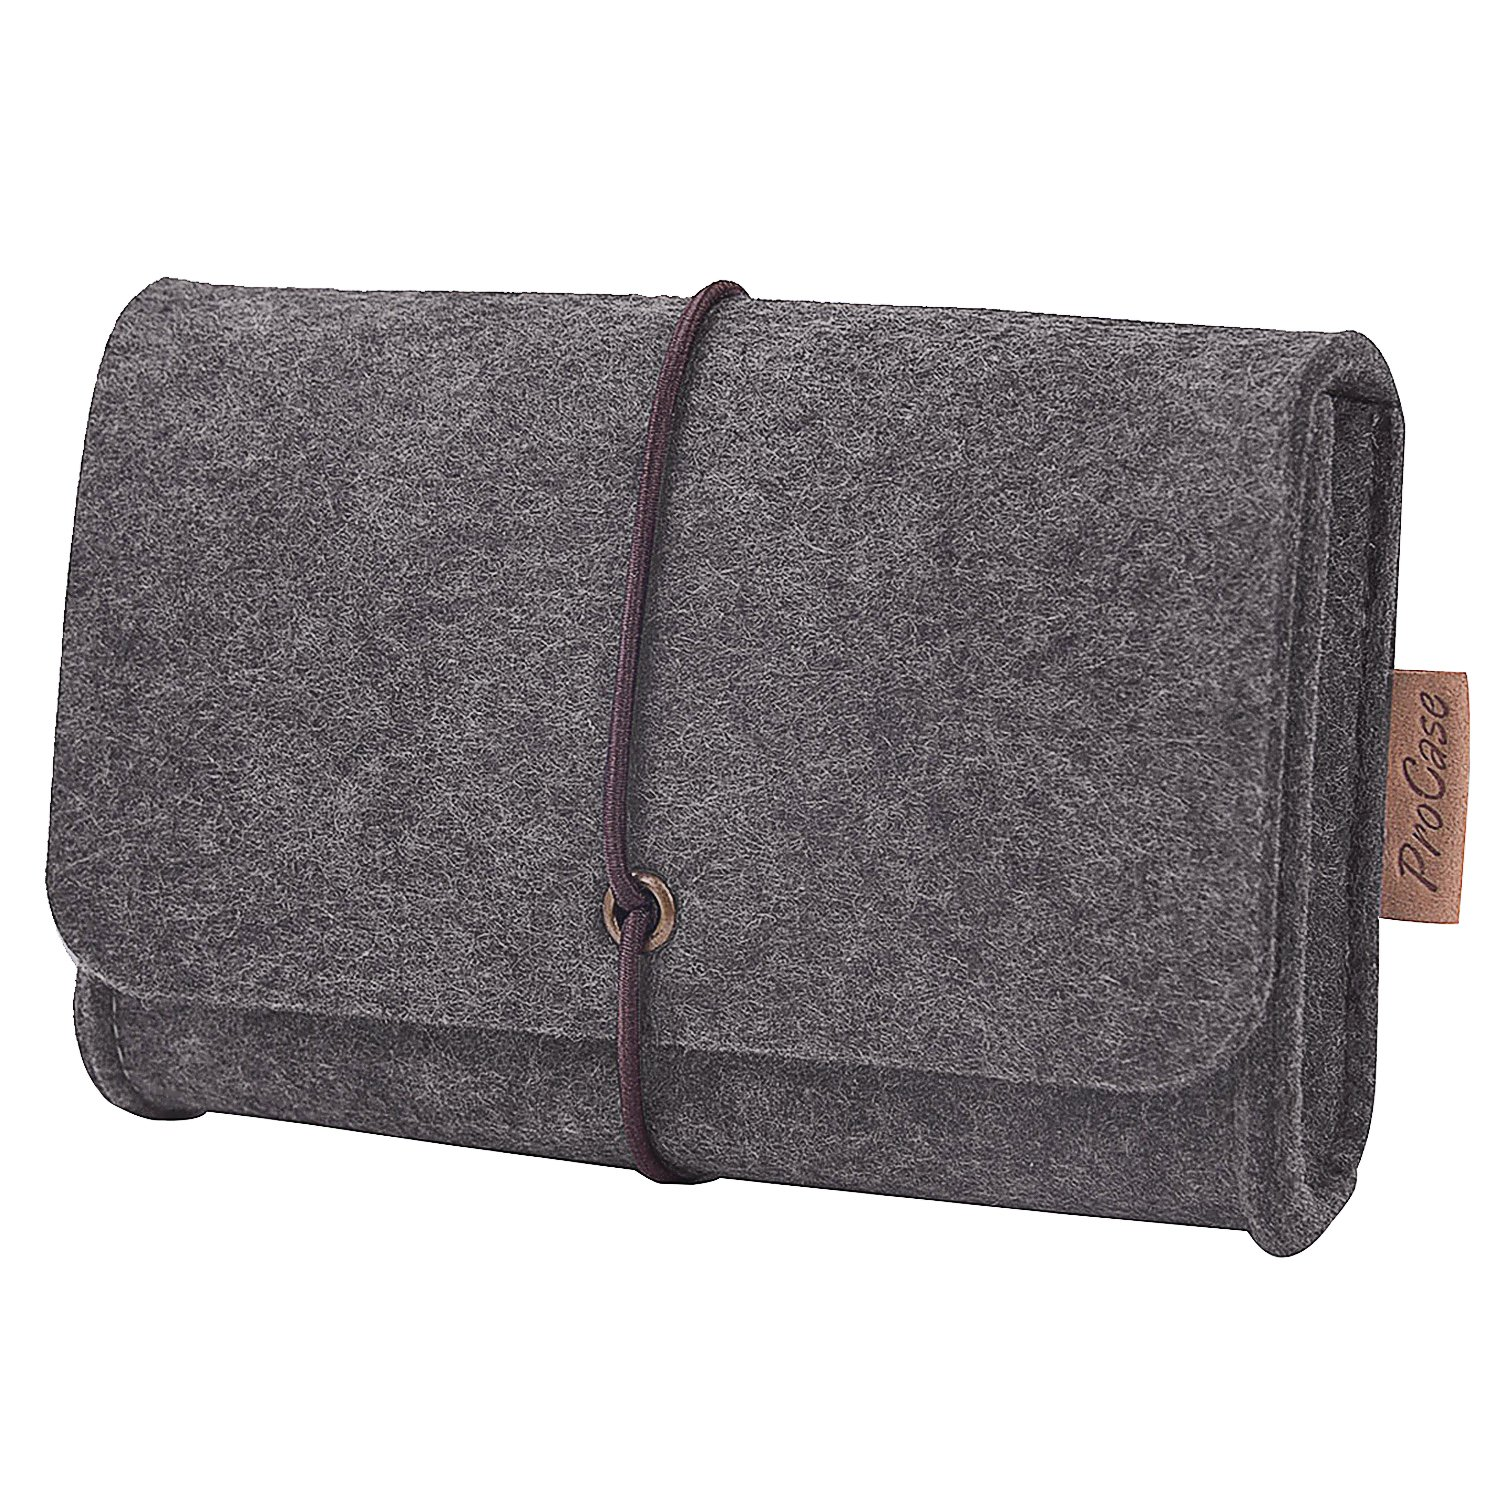 ProCase Felt Storage Case Bag Accessories Organizer for MacBook Laptop Mouse Power Adapter Cables Computer Electronics Cellphone Accessories Charger SSD HHD -Silver Grey 6867598